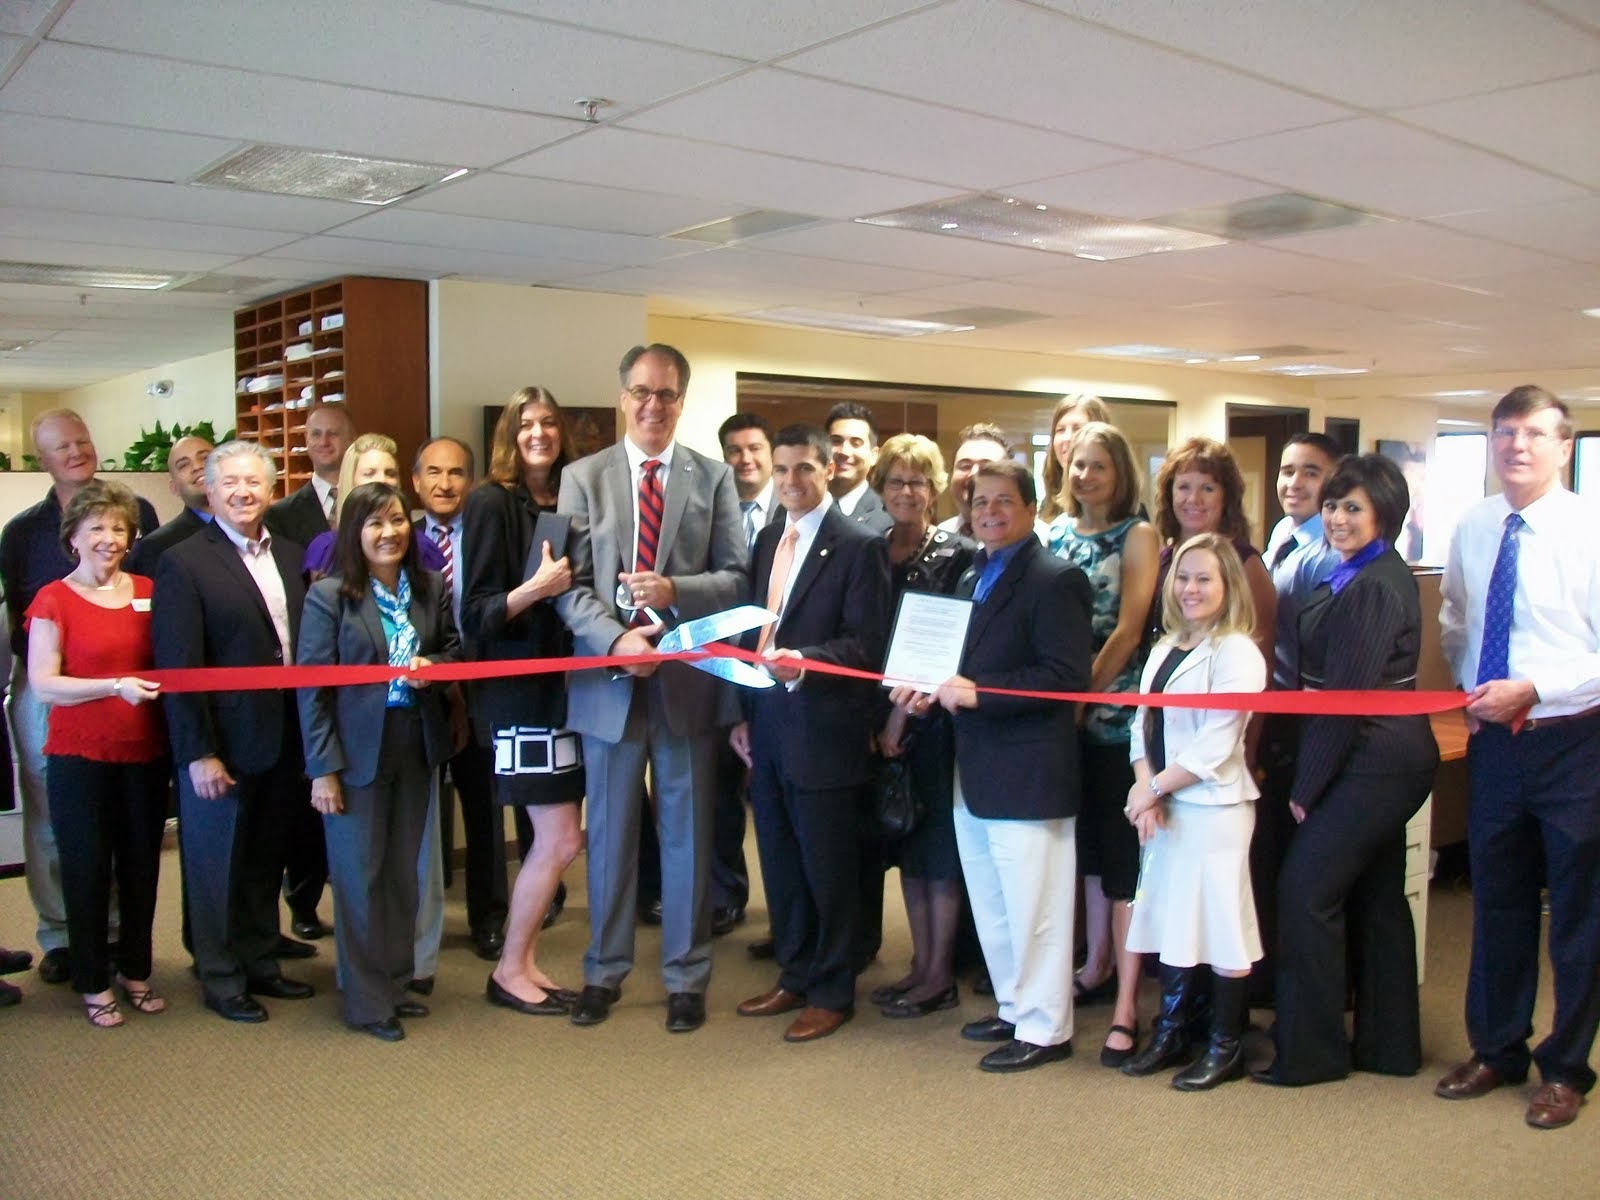 Northwestern Mutual officially opens its newly expanded Tucson office.  Thanks to the company's focus and success in the Tucson market, the local office is adding staff and experiencing rapid growth.  Northwestern Mutual offers insurance for life, disability and long term care as well as investment products.